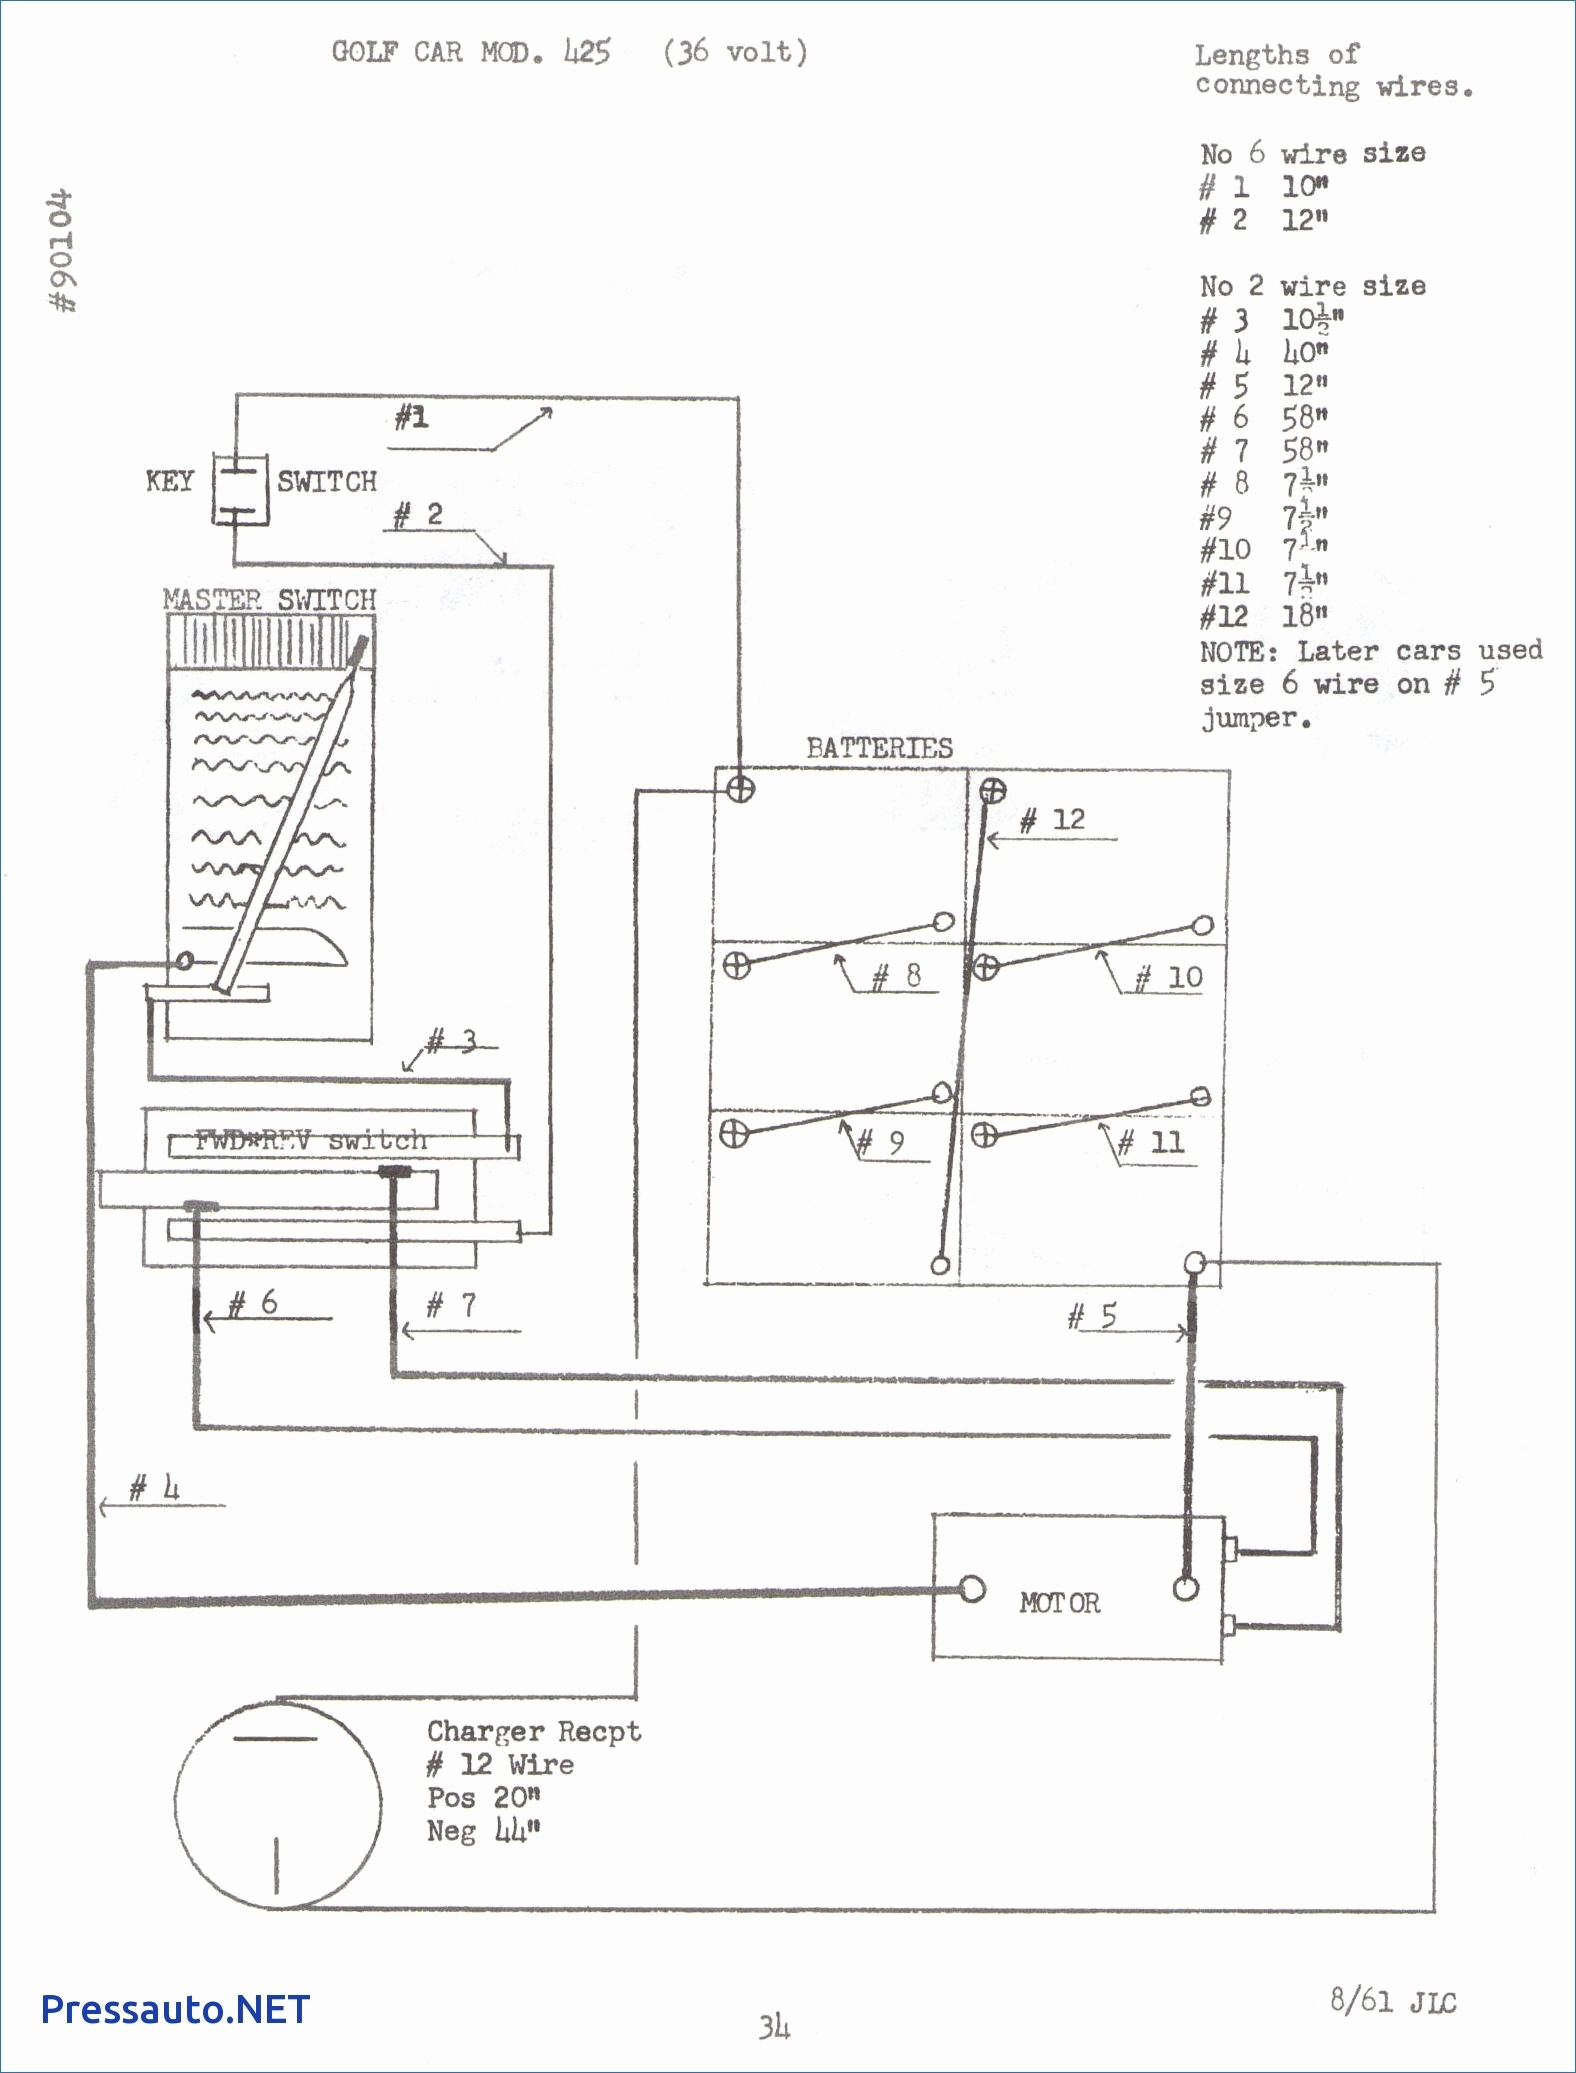 hight resolution of taylor dunn golf cart wiring diagram diagram data schema taylor dunn r380 wiring diagram 36